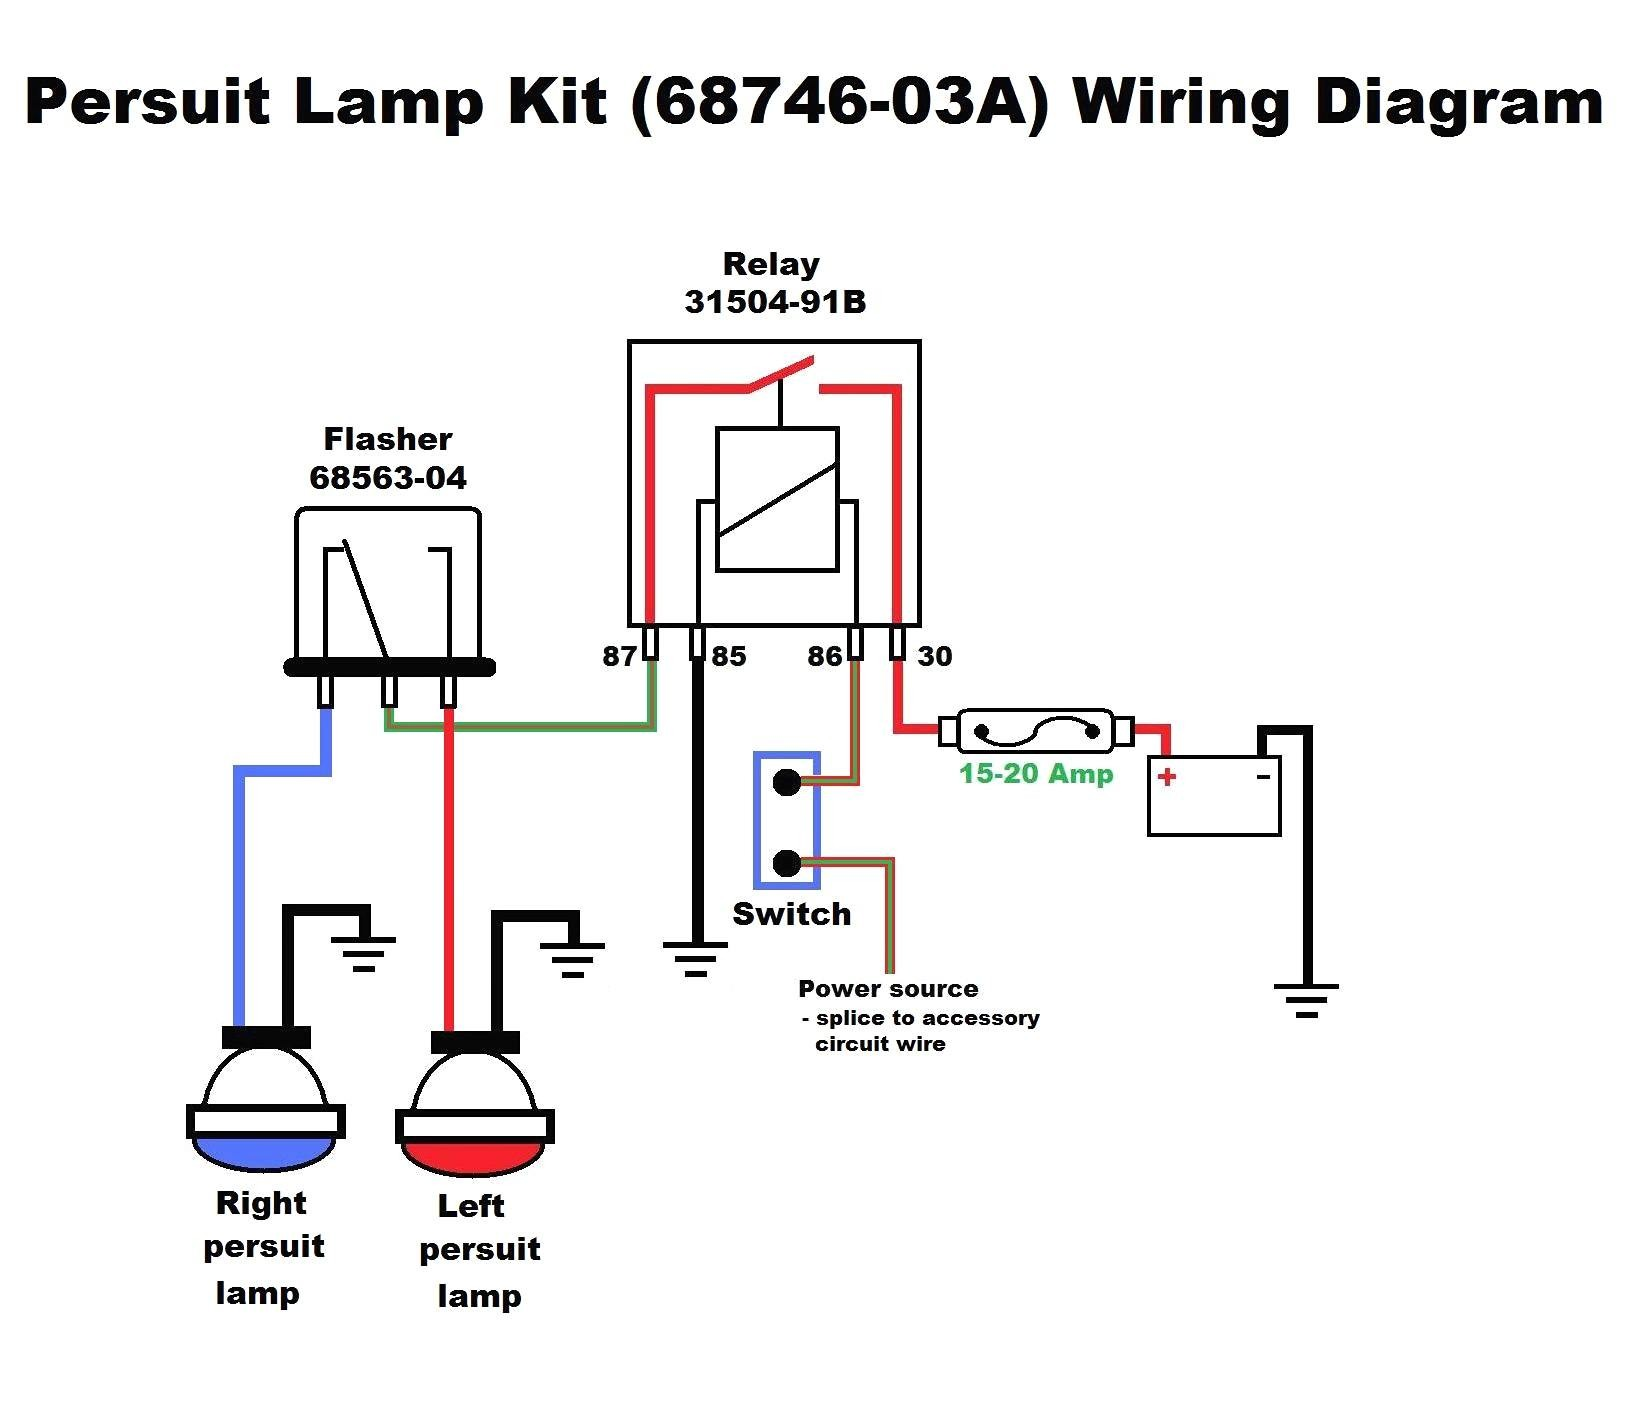 6 volt flasher wiring diagram